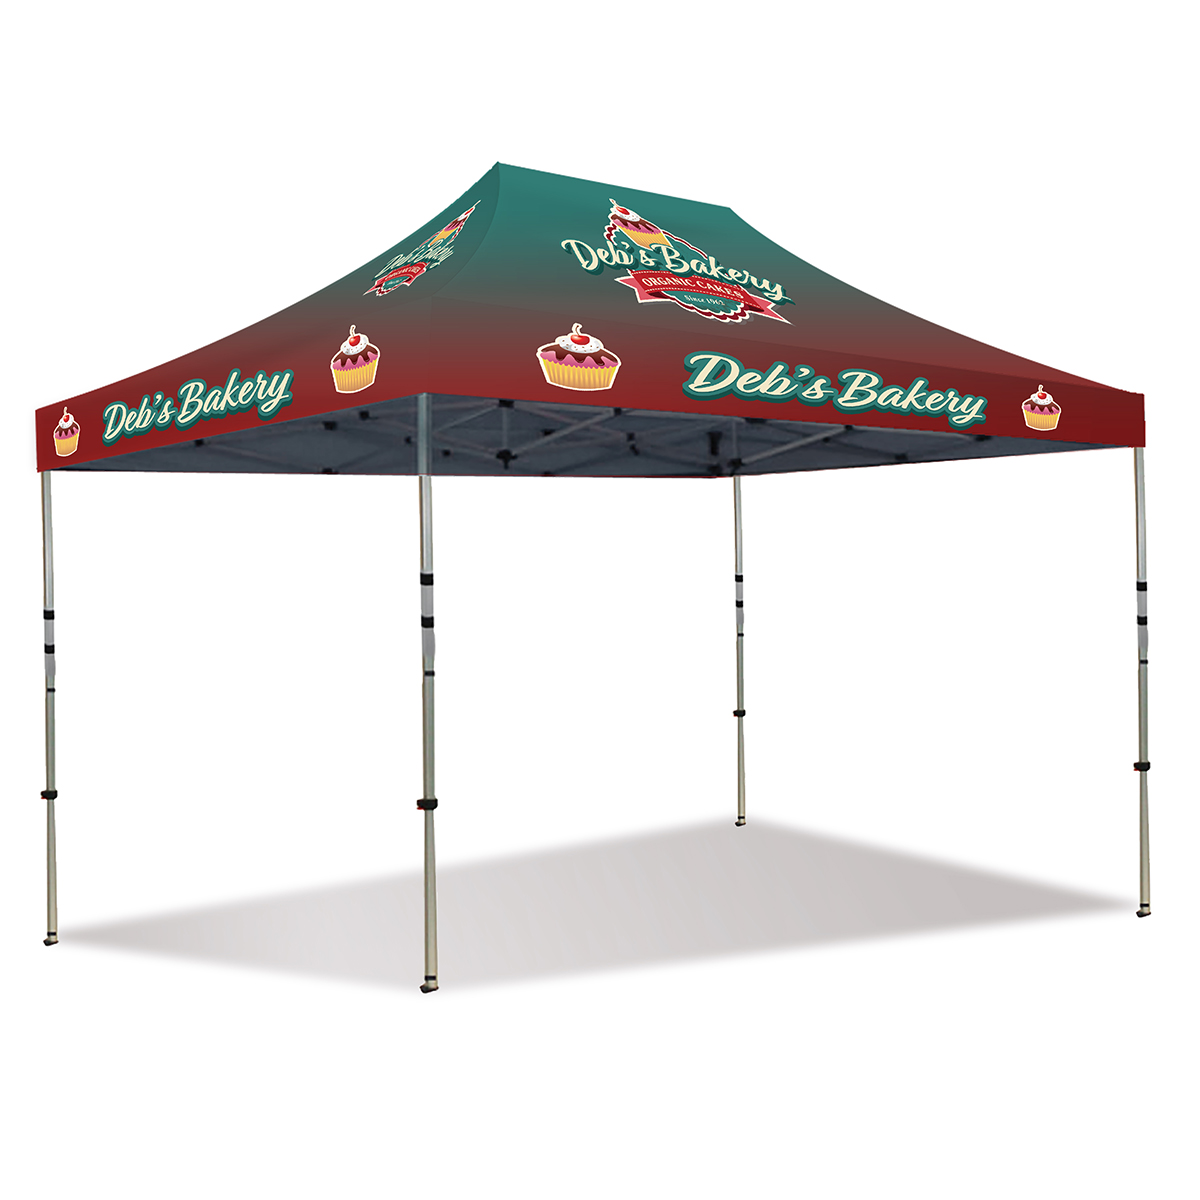 15ft Pop Up Canopy - Full Color-Premium